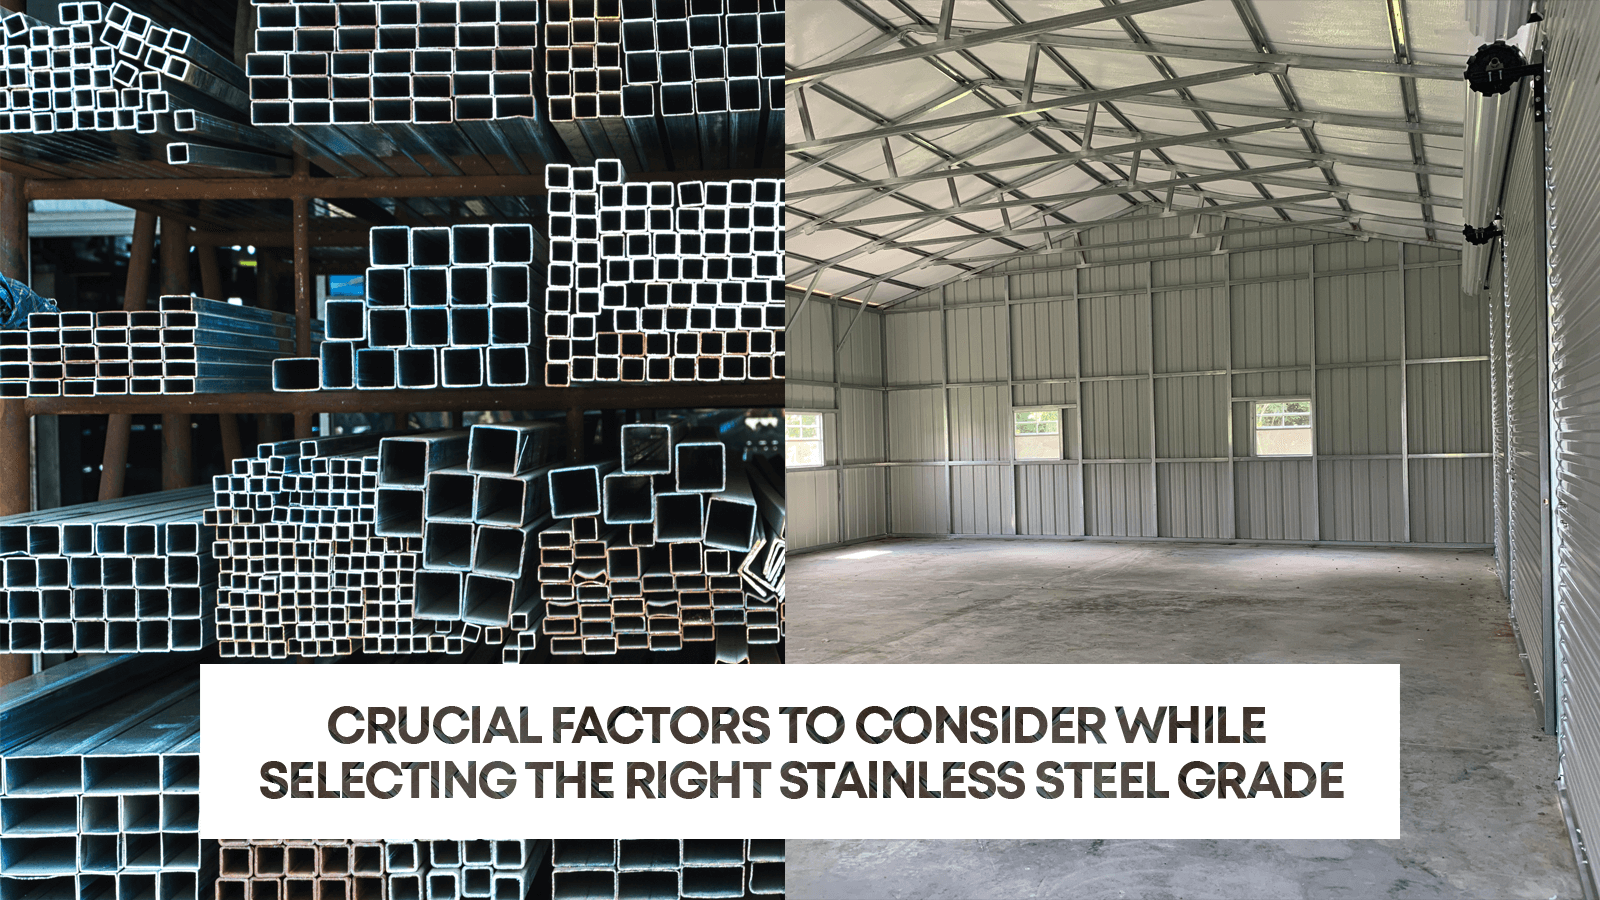 Factors to Consider While Selecting the Right Stainless Steel Grade